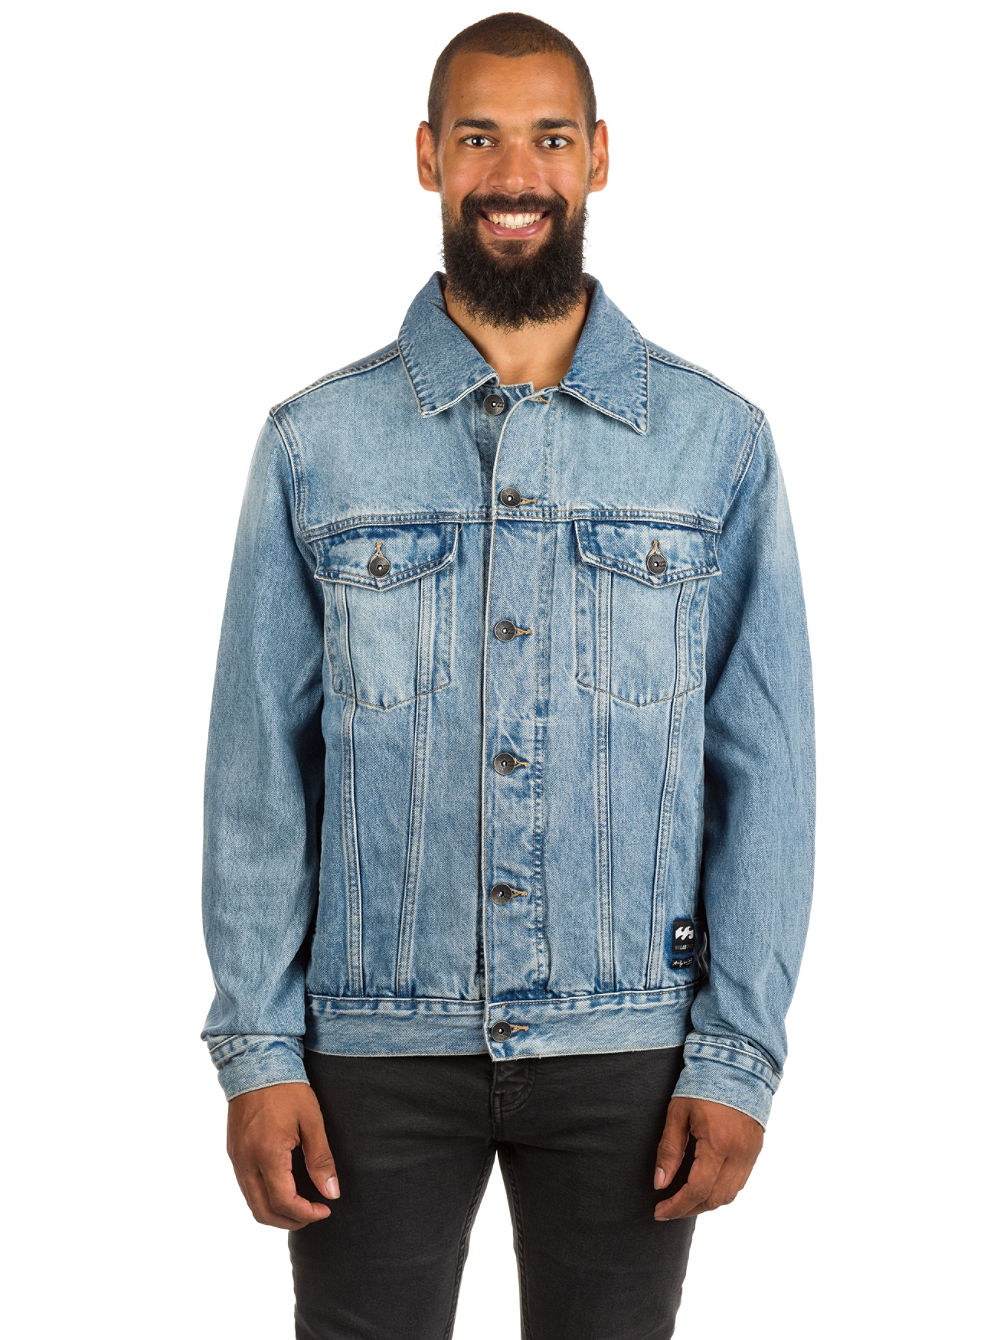 Looking for wholesale bulk discount denim jackets cheap online drop shipping? mediacrucialxa.cf offers a large selection of discount cheap denim jackets at a fraction of the retail price.